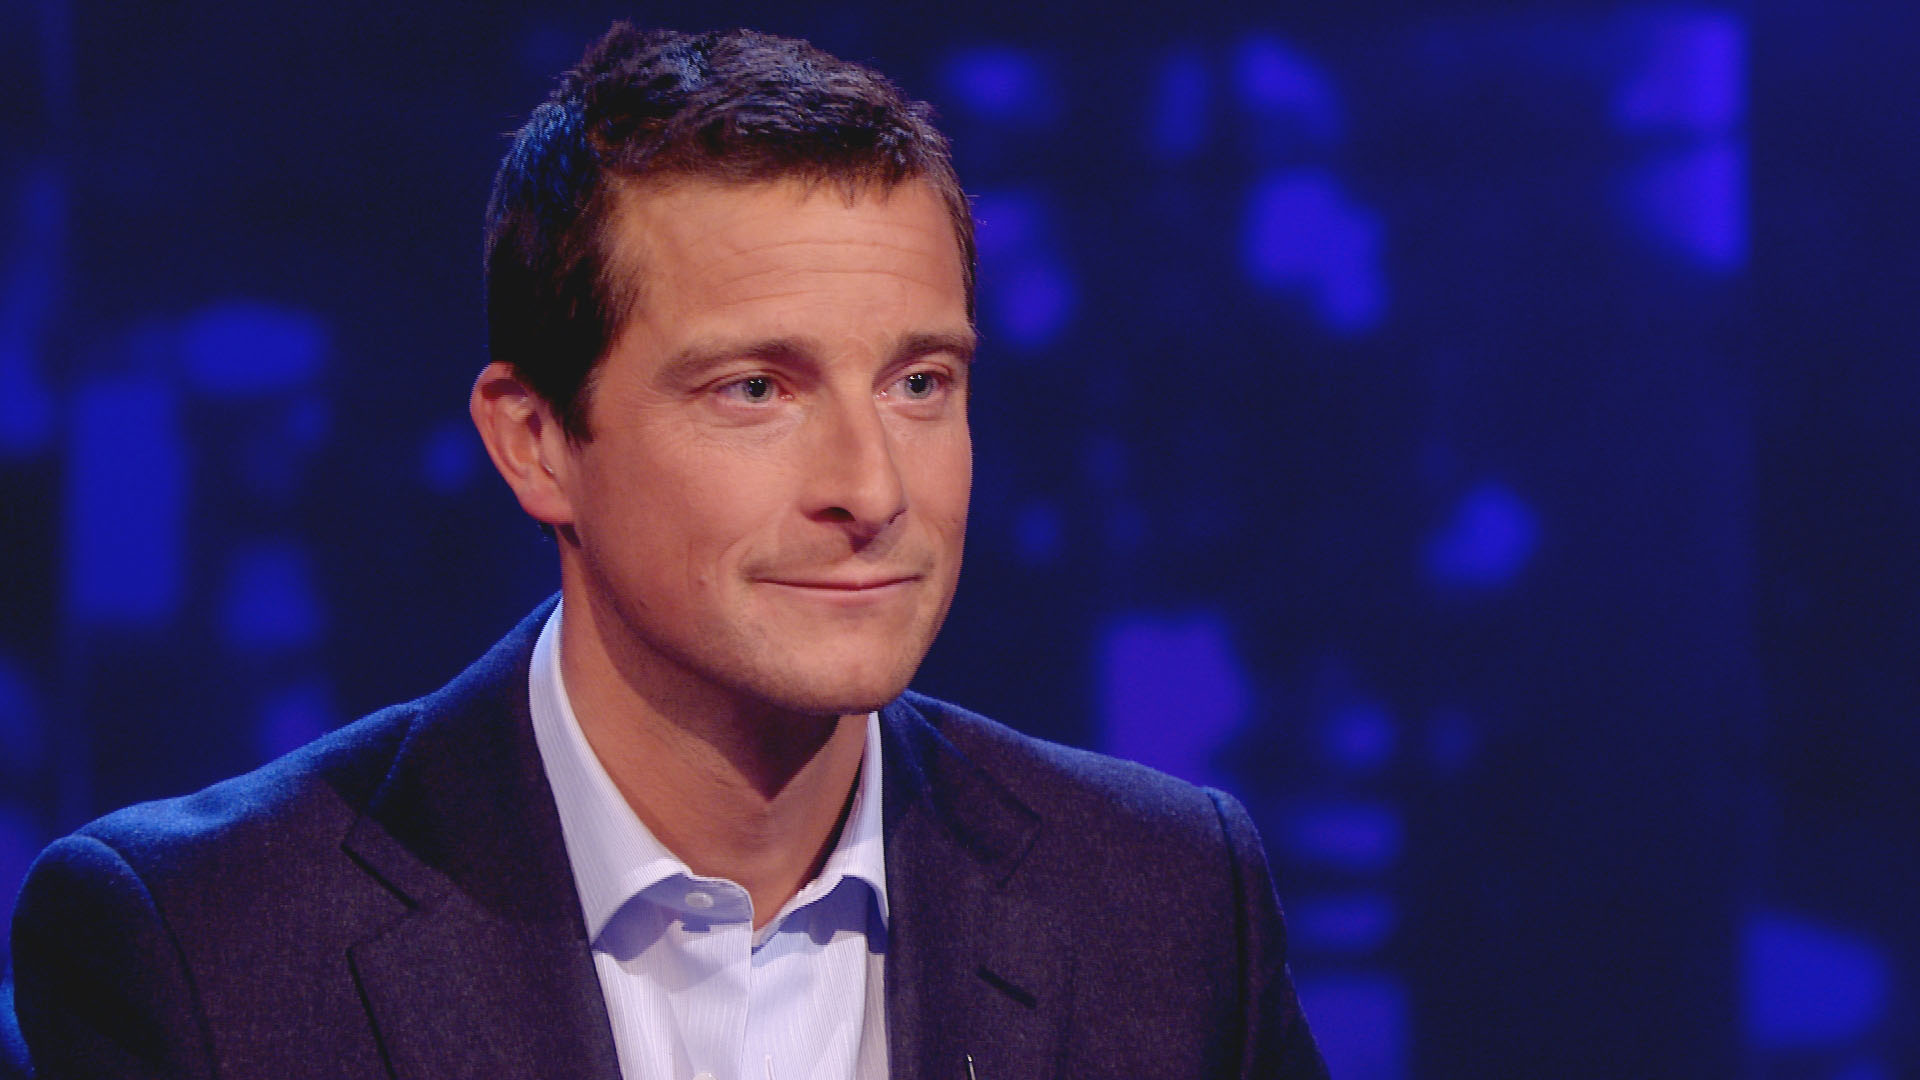 Bear Grylls admitted that there's 'substance' to allegations parts of his shows are staged